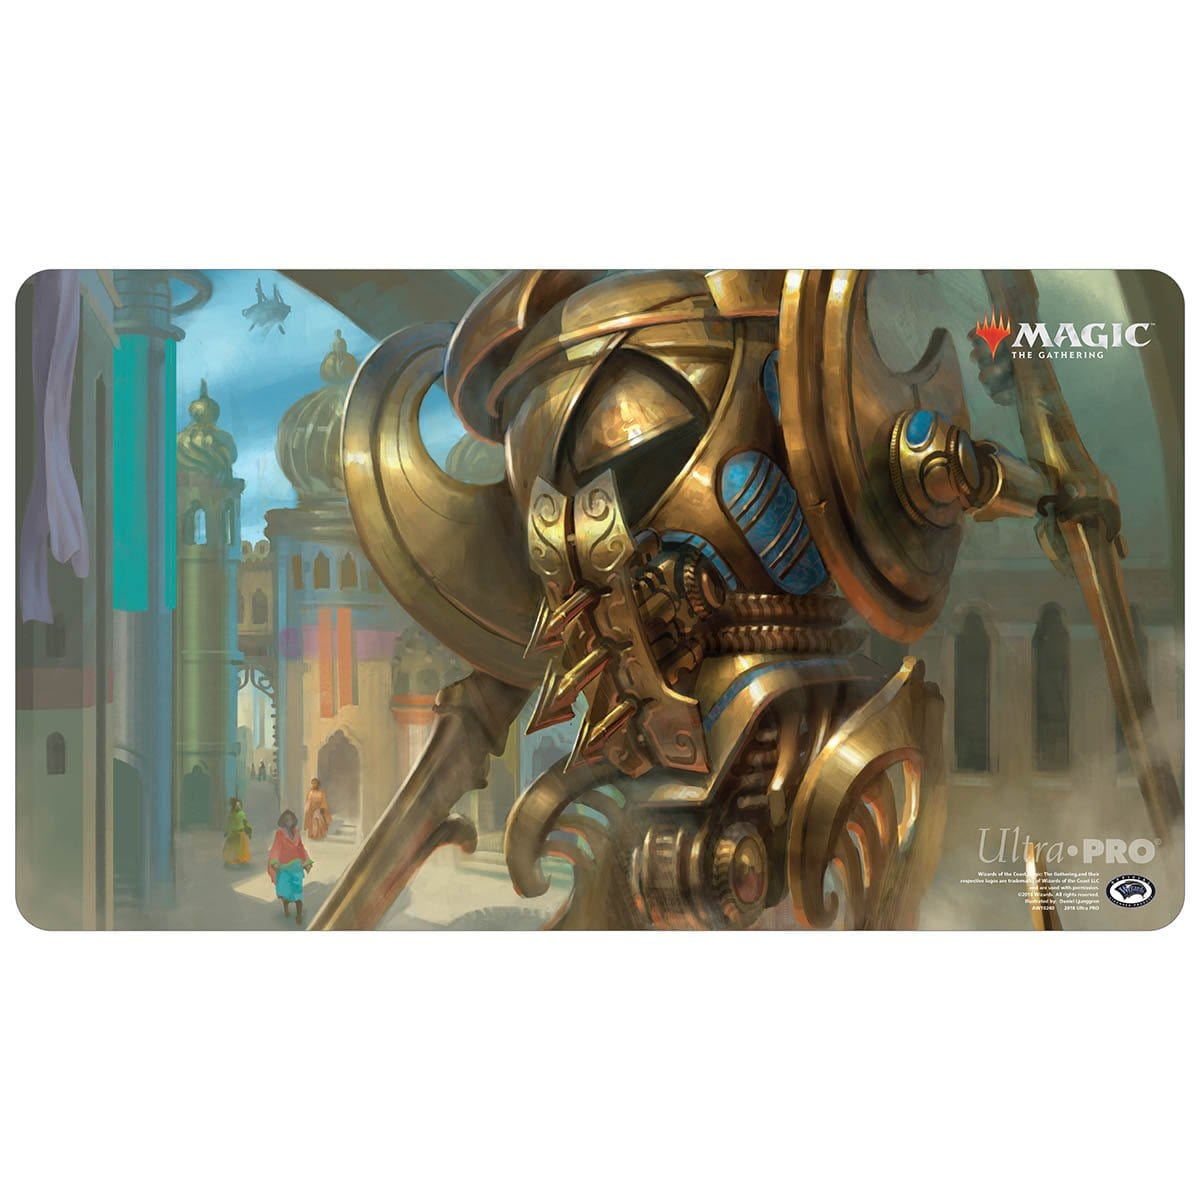 Walking Ballista Playmat - Playmat - Original Magic Art - Accessories for Magic the Gathering and other card games